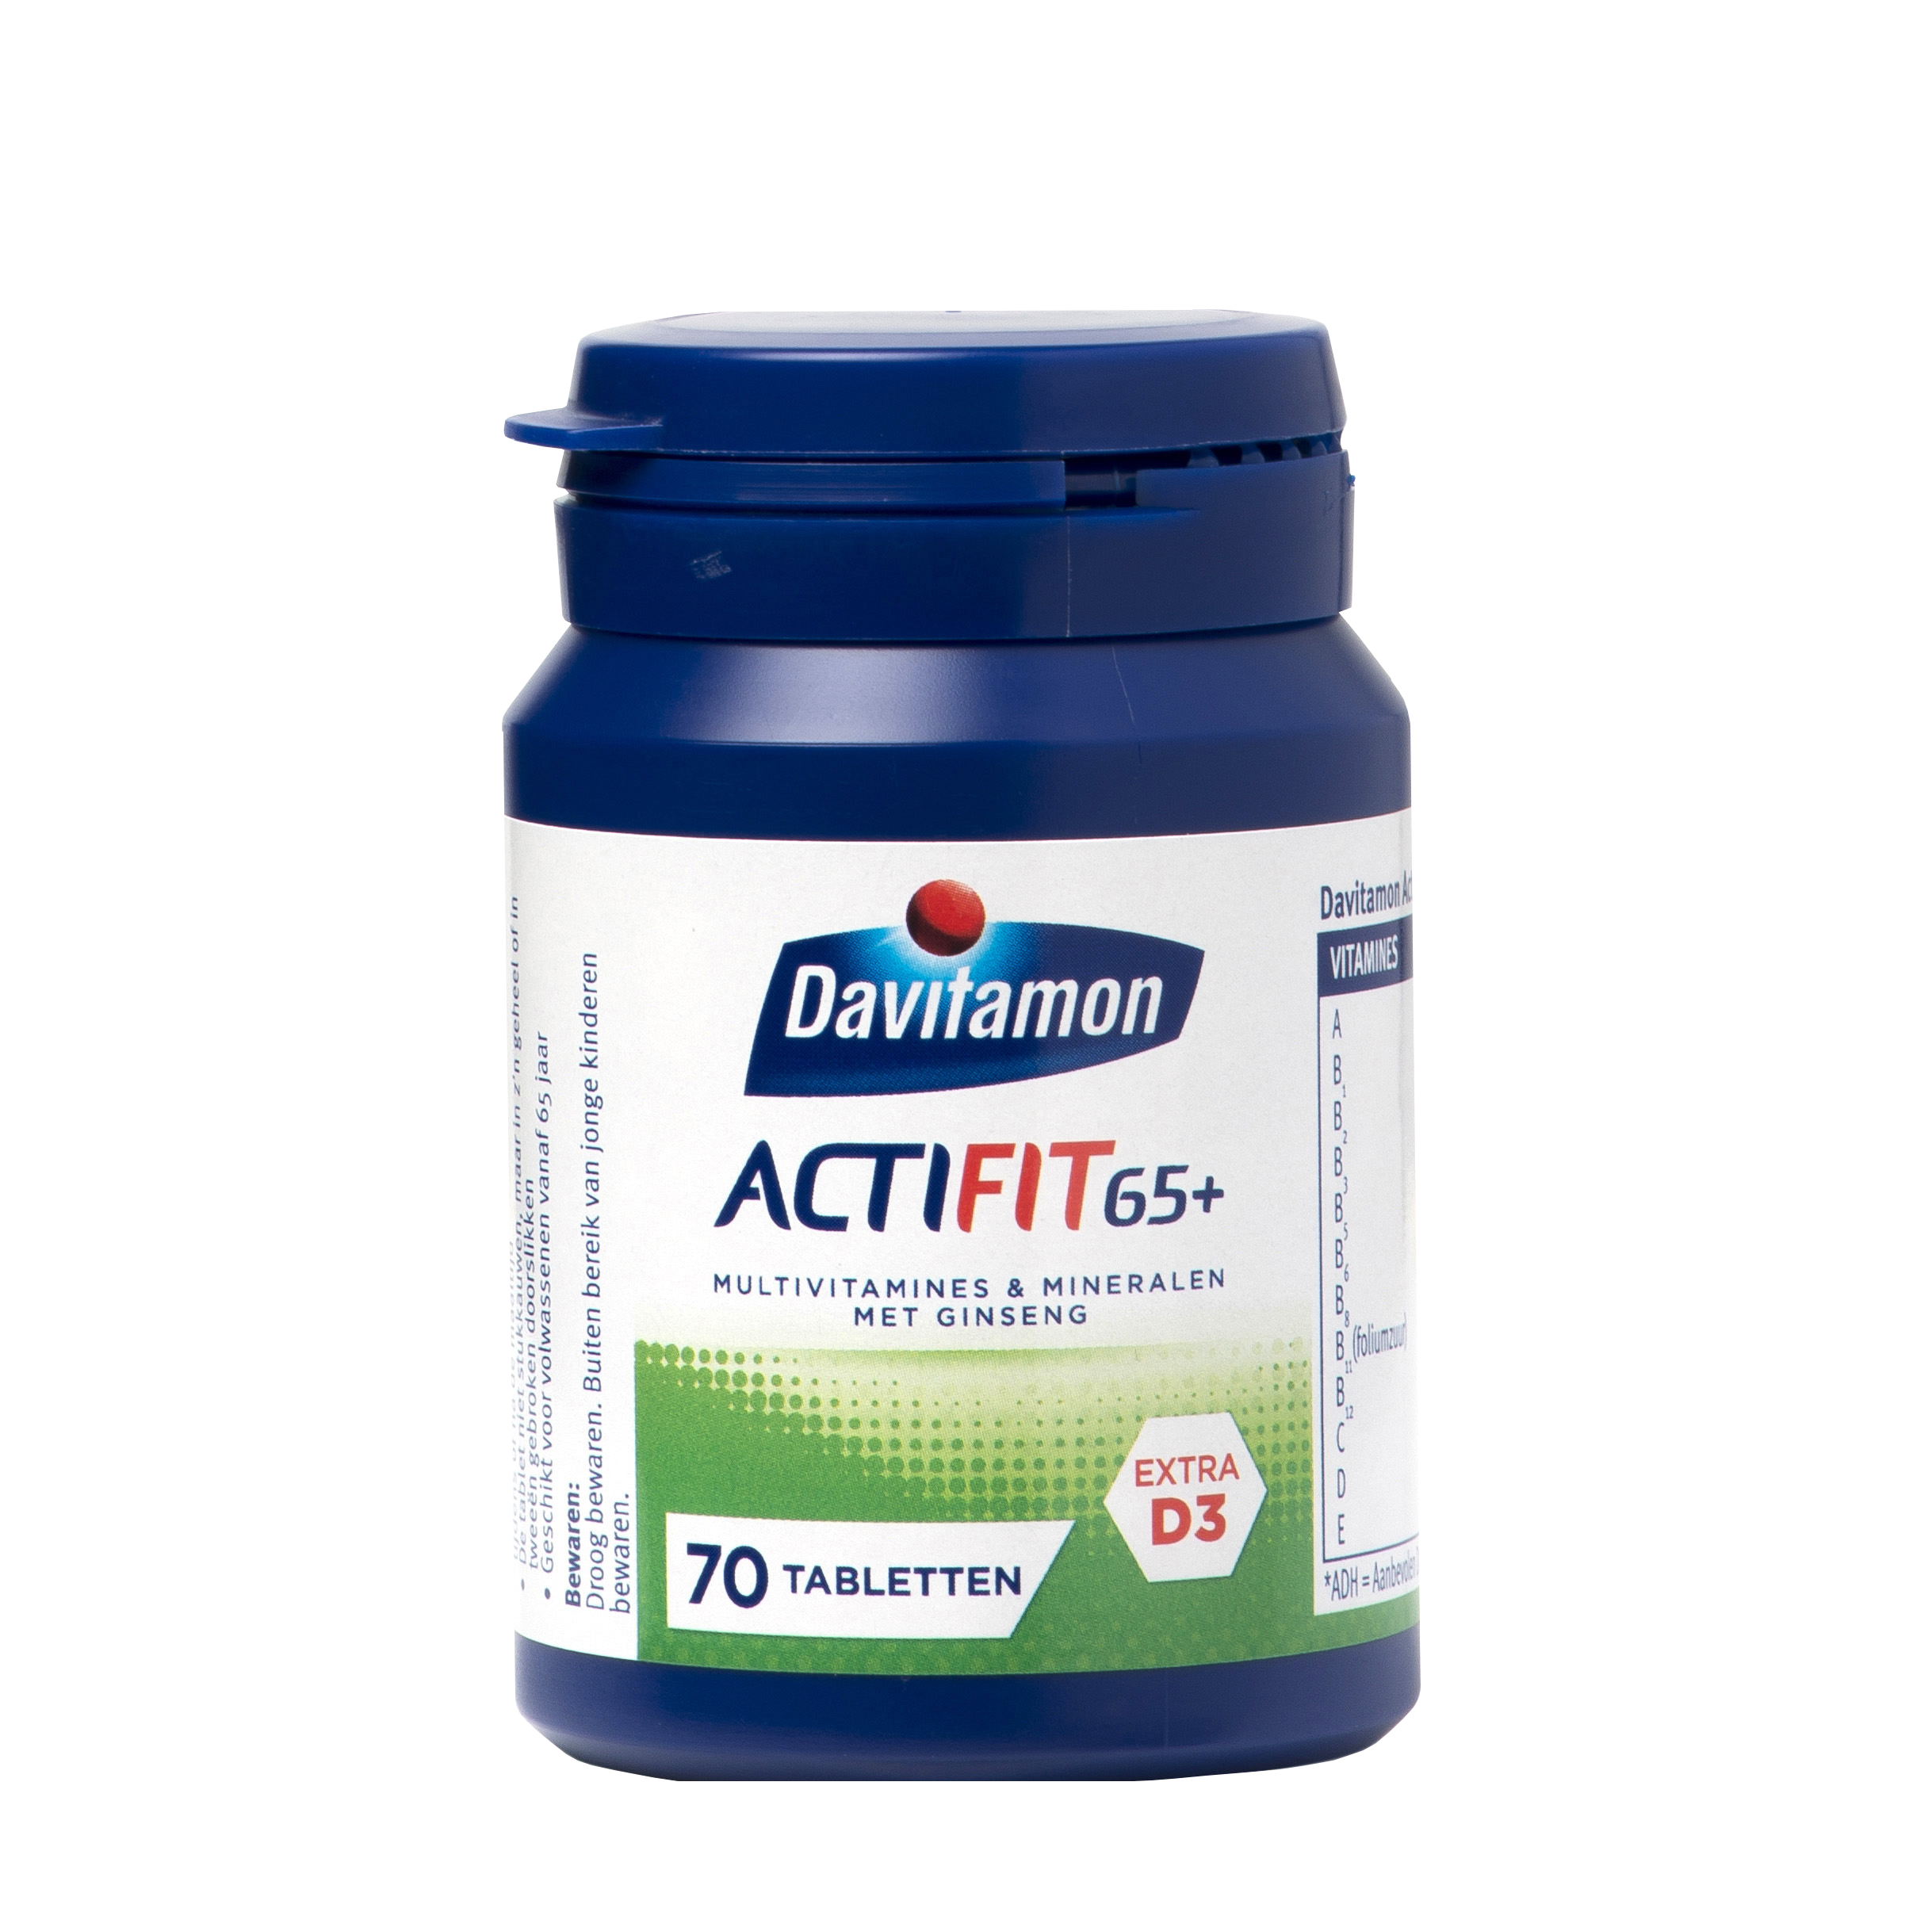 Davitamon Actifit 65+ Tabletten Product